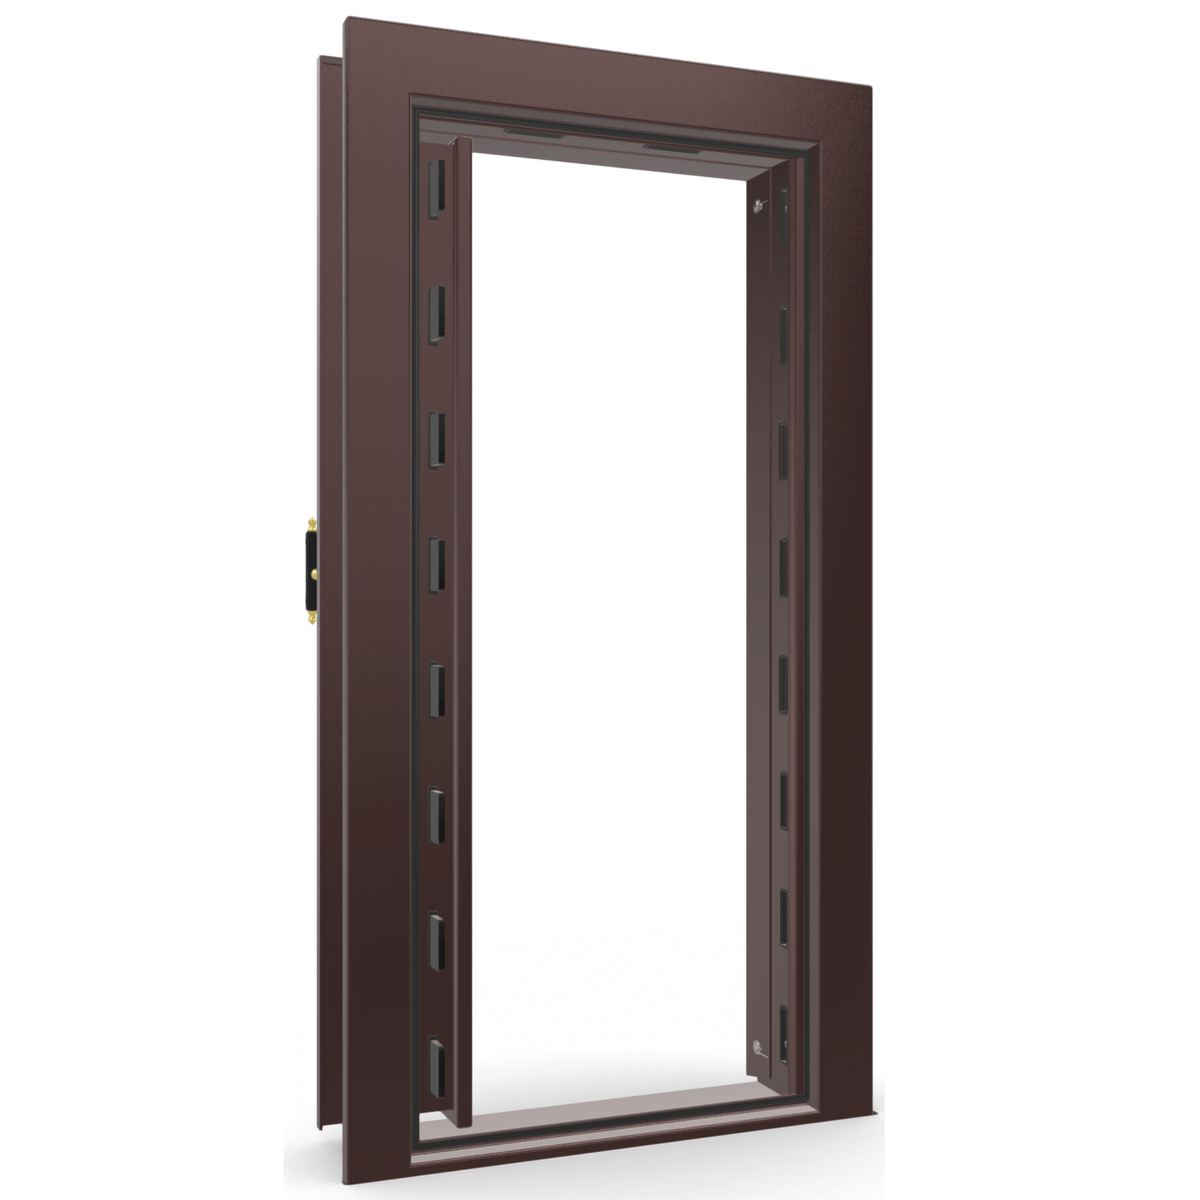 "Vault Door Left Inswing | Burgundy Gloss | Brass Mechanical Lock | 81-85""(H) x 27-42""(W) x 7-10""(D)"